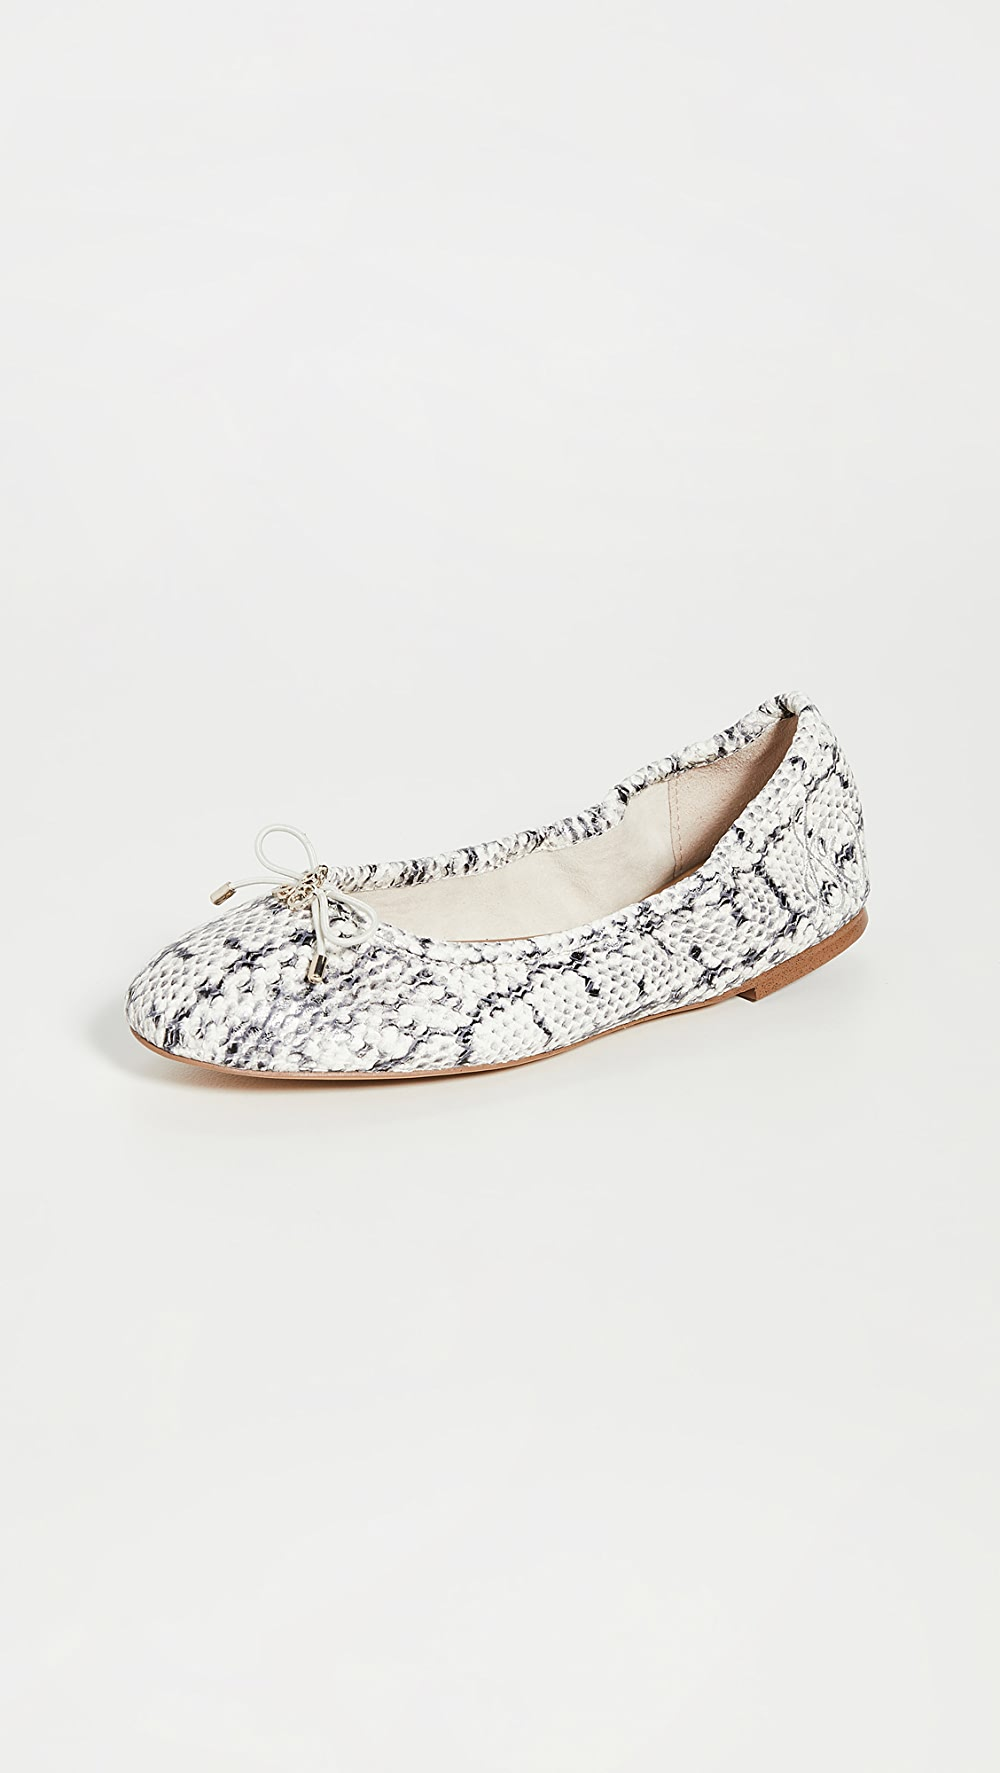 Considerate Sam Edelman - Felicia Flats Curing Cough And Facilitating Expectoration And Relieving Hoarseness